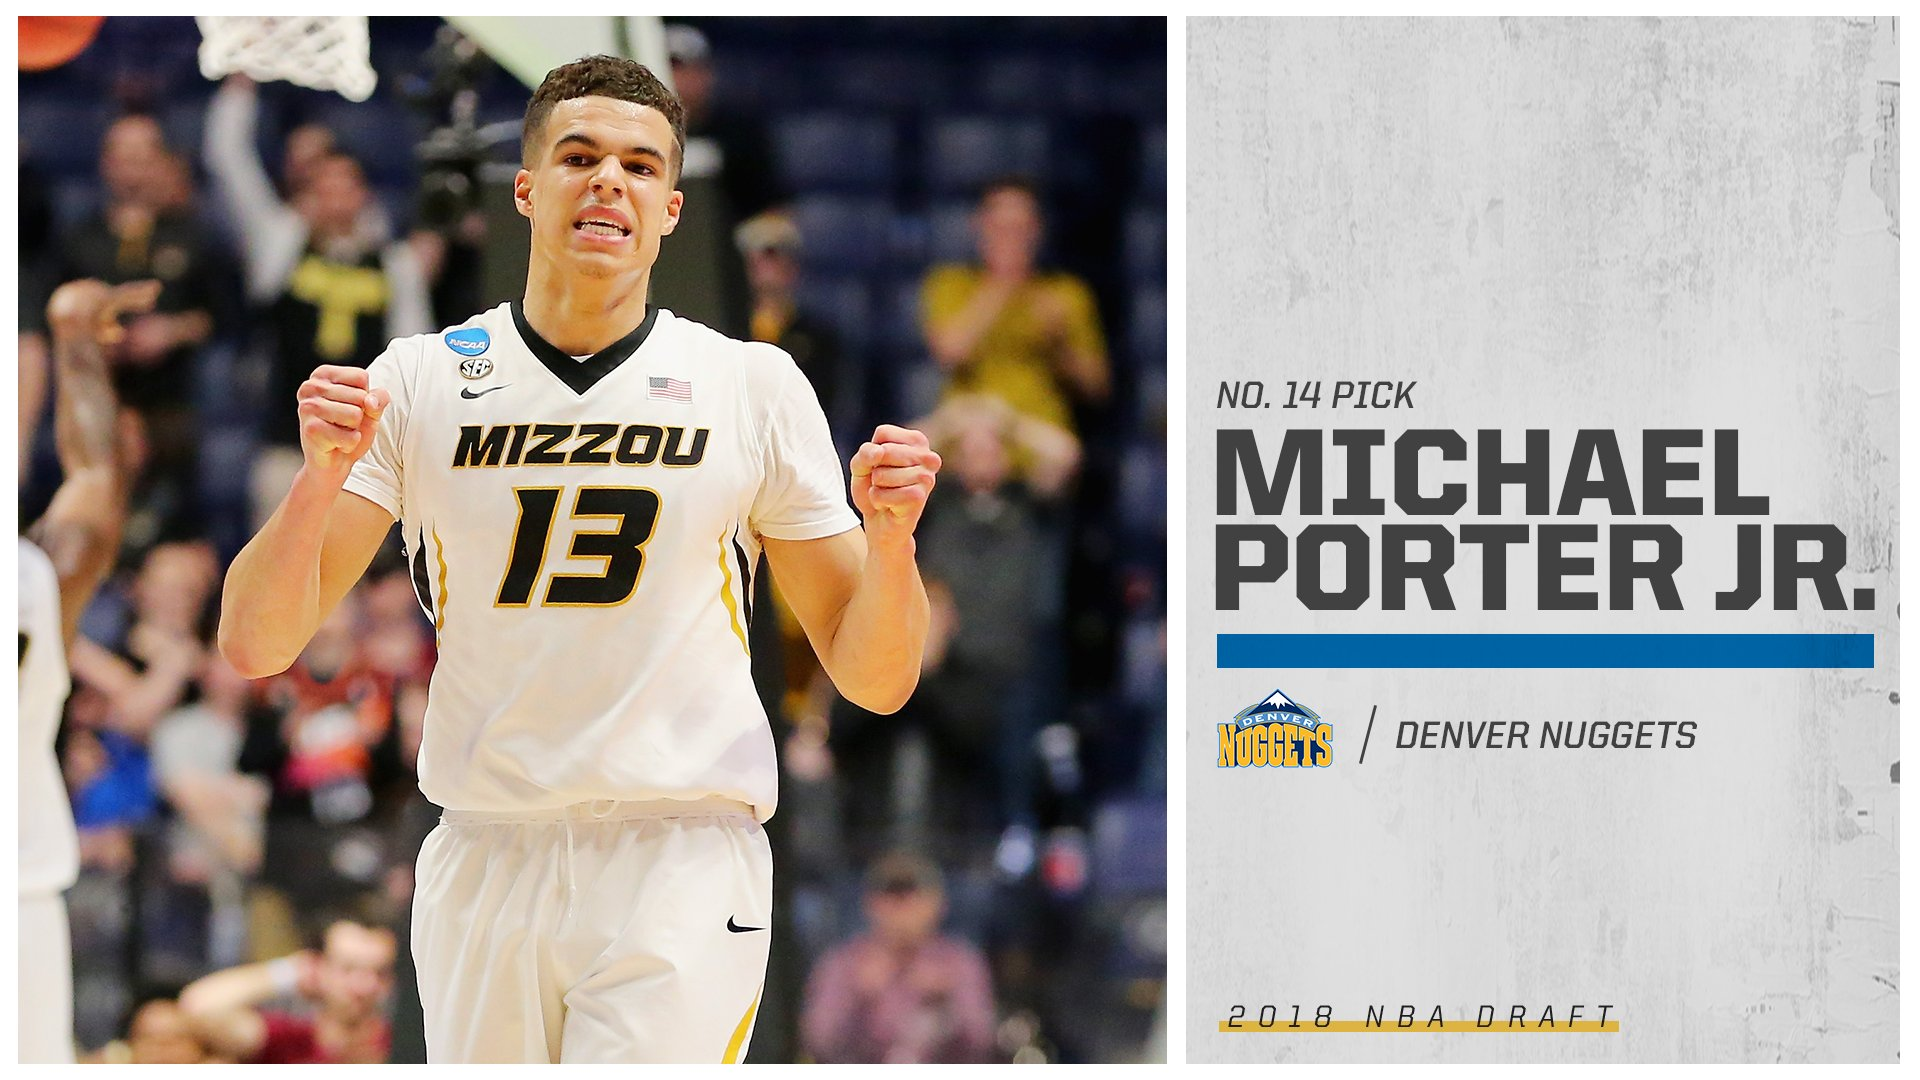 Michael Porter Jr. is officially off the market.  The Denver Nuggets select Porter Jr. at No. 14 overall! https://t.co/lO7MkKHvi7